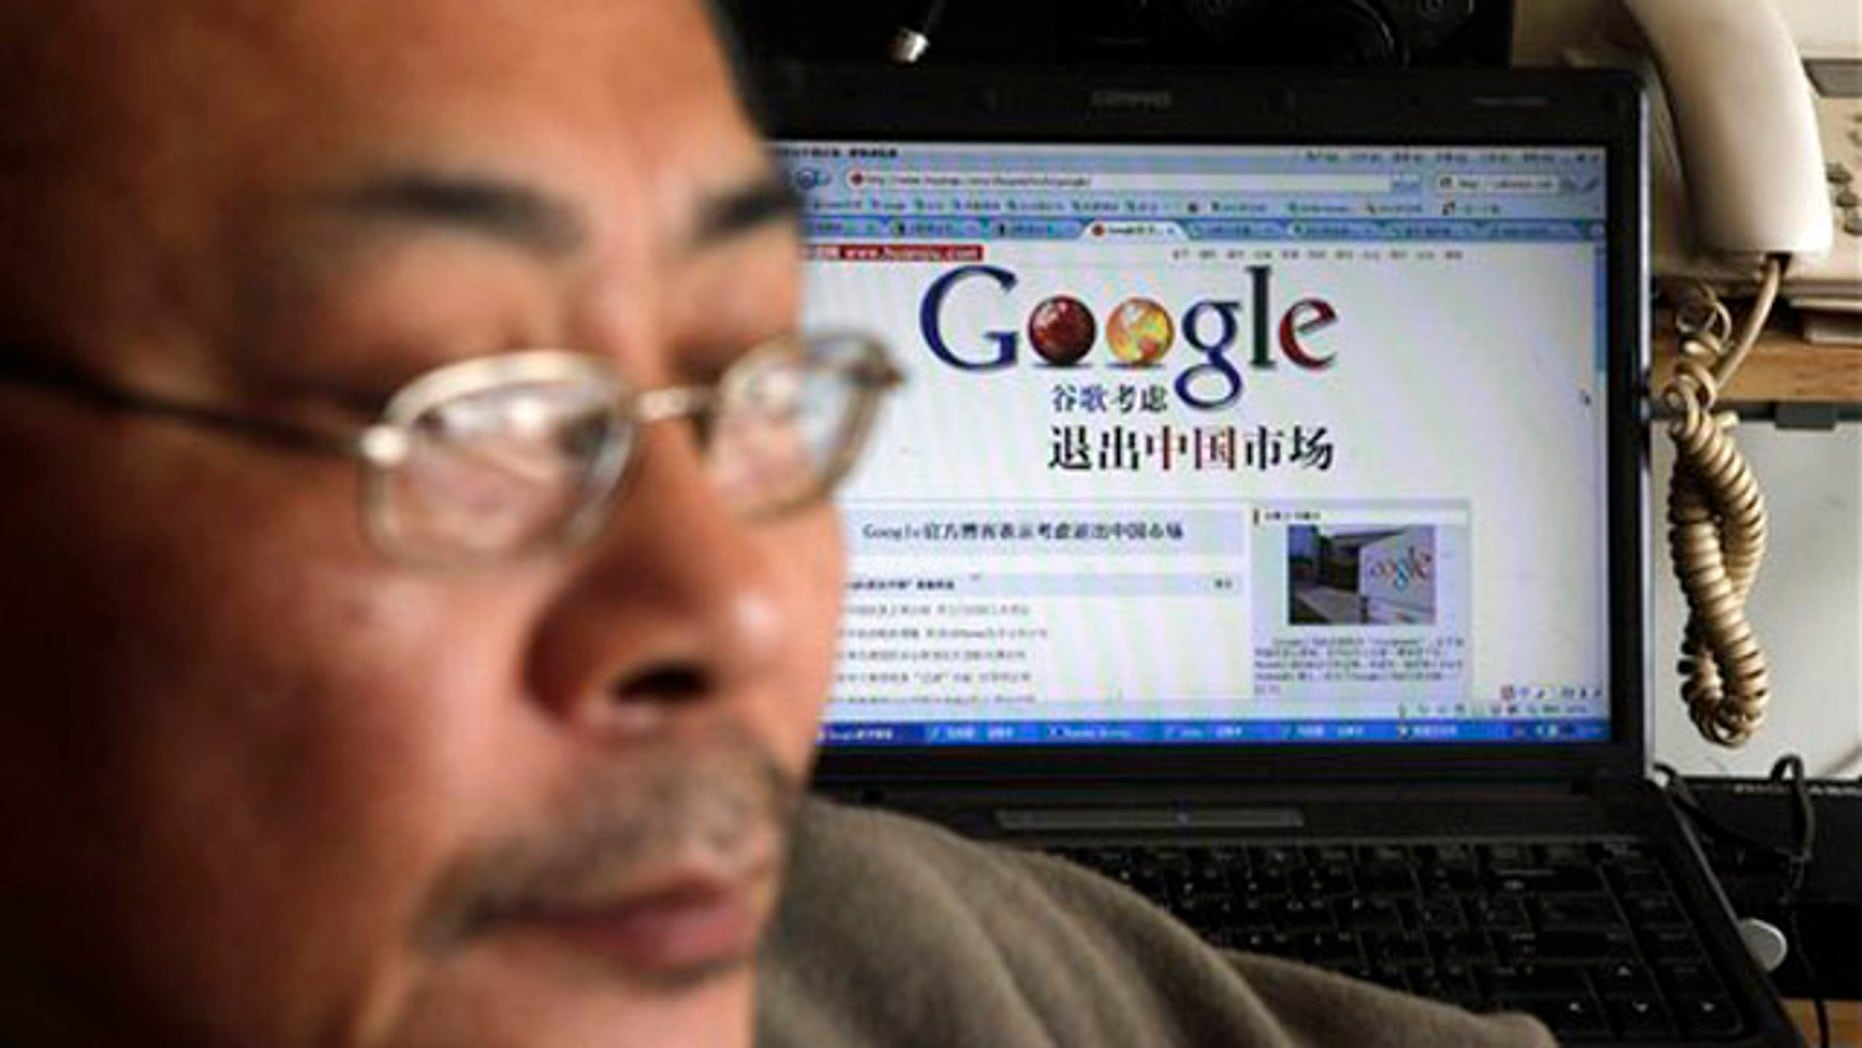 "Award winning Chinese blogger Tiger Temple, or Zhang Shihe, a critic of China's internet censorship, is seen with a webpage with the Chinese words ""Google considers leaving the Chinese market"" in his home in Beijing, Tuesday, March 23, 2010. Google Inc. stopped censoring the Internet for China by shifting its search engine off the mainland Monday but said it will maintain other operations in the country. (AP Photo/ Gemunu Amarasinghe)"